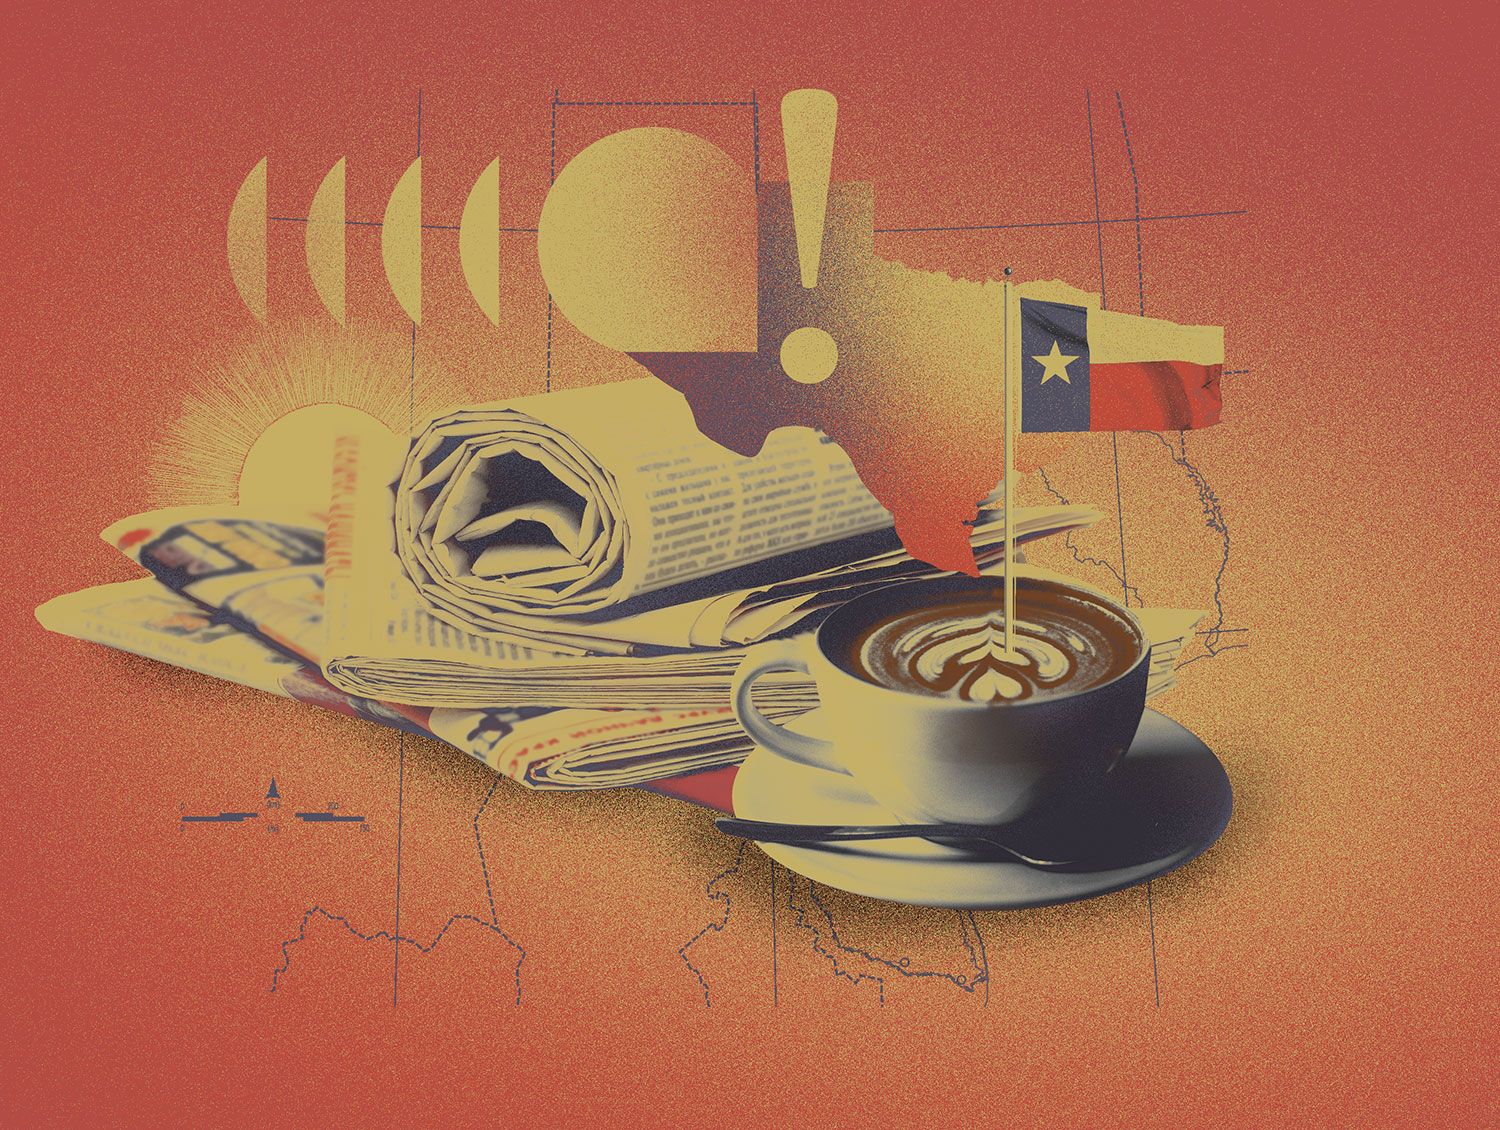 Max-o-matic: Texas Monthly: Newsletters